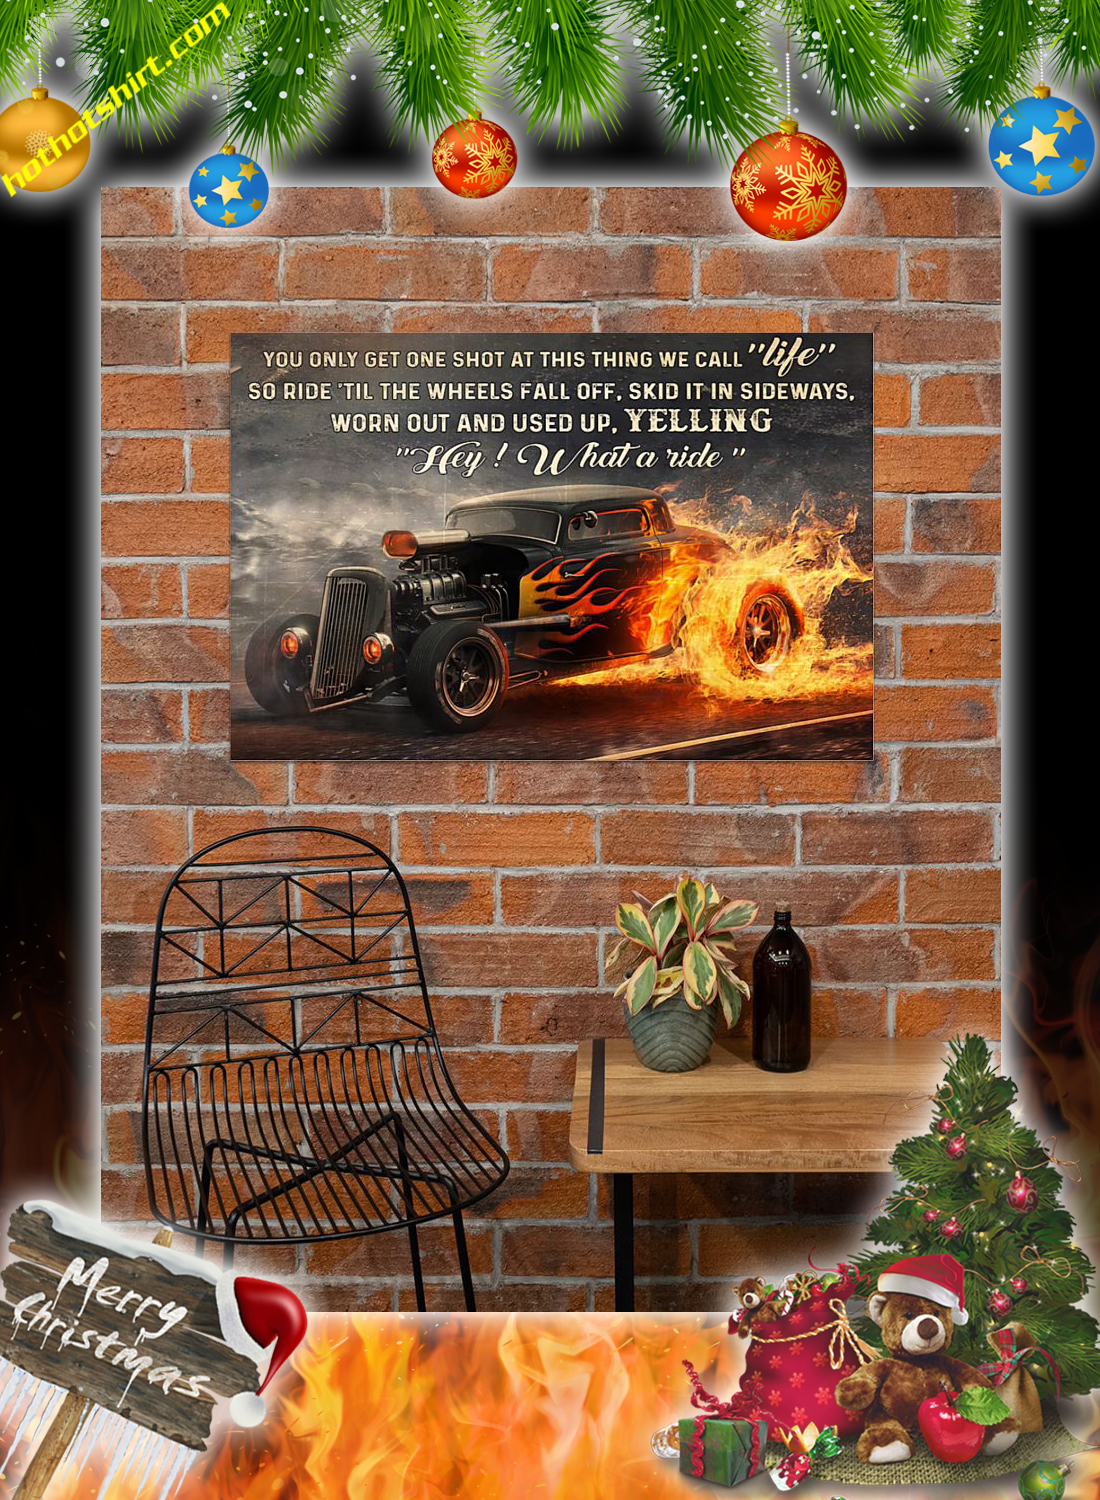 Hot rod what a ride poster 2